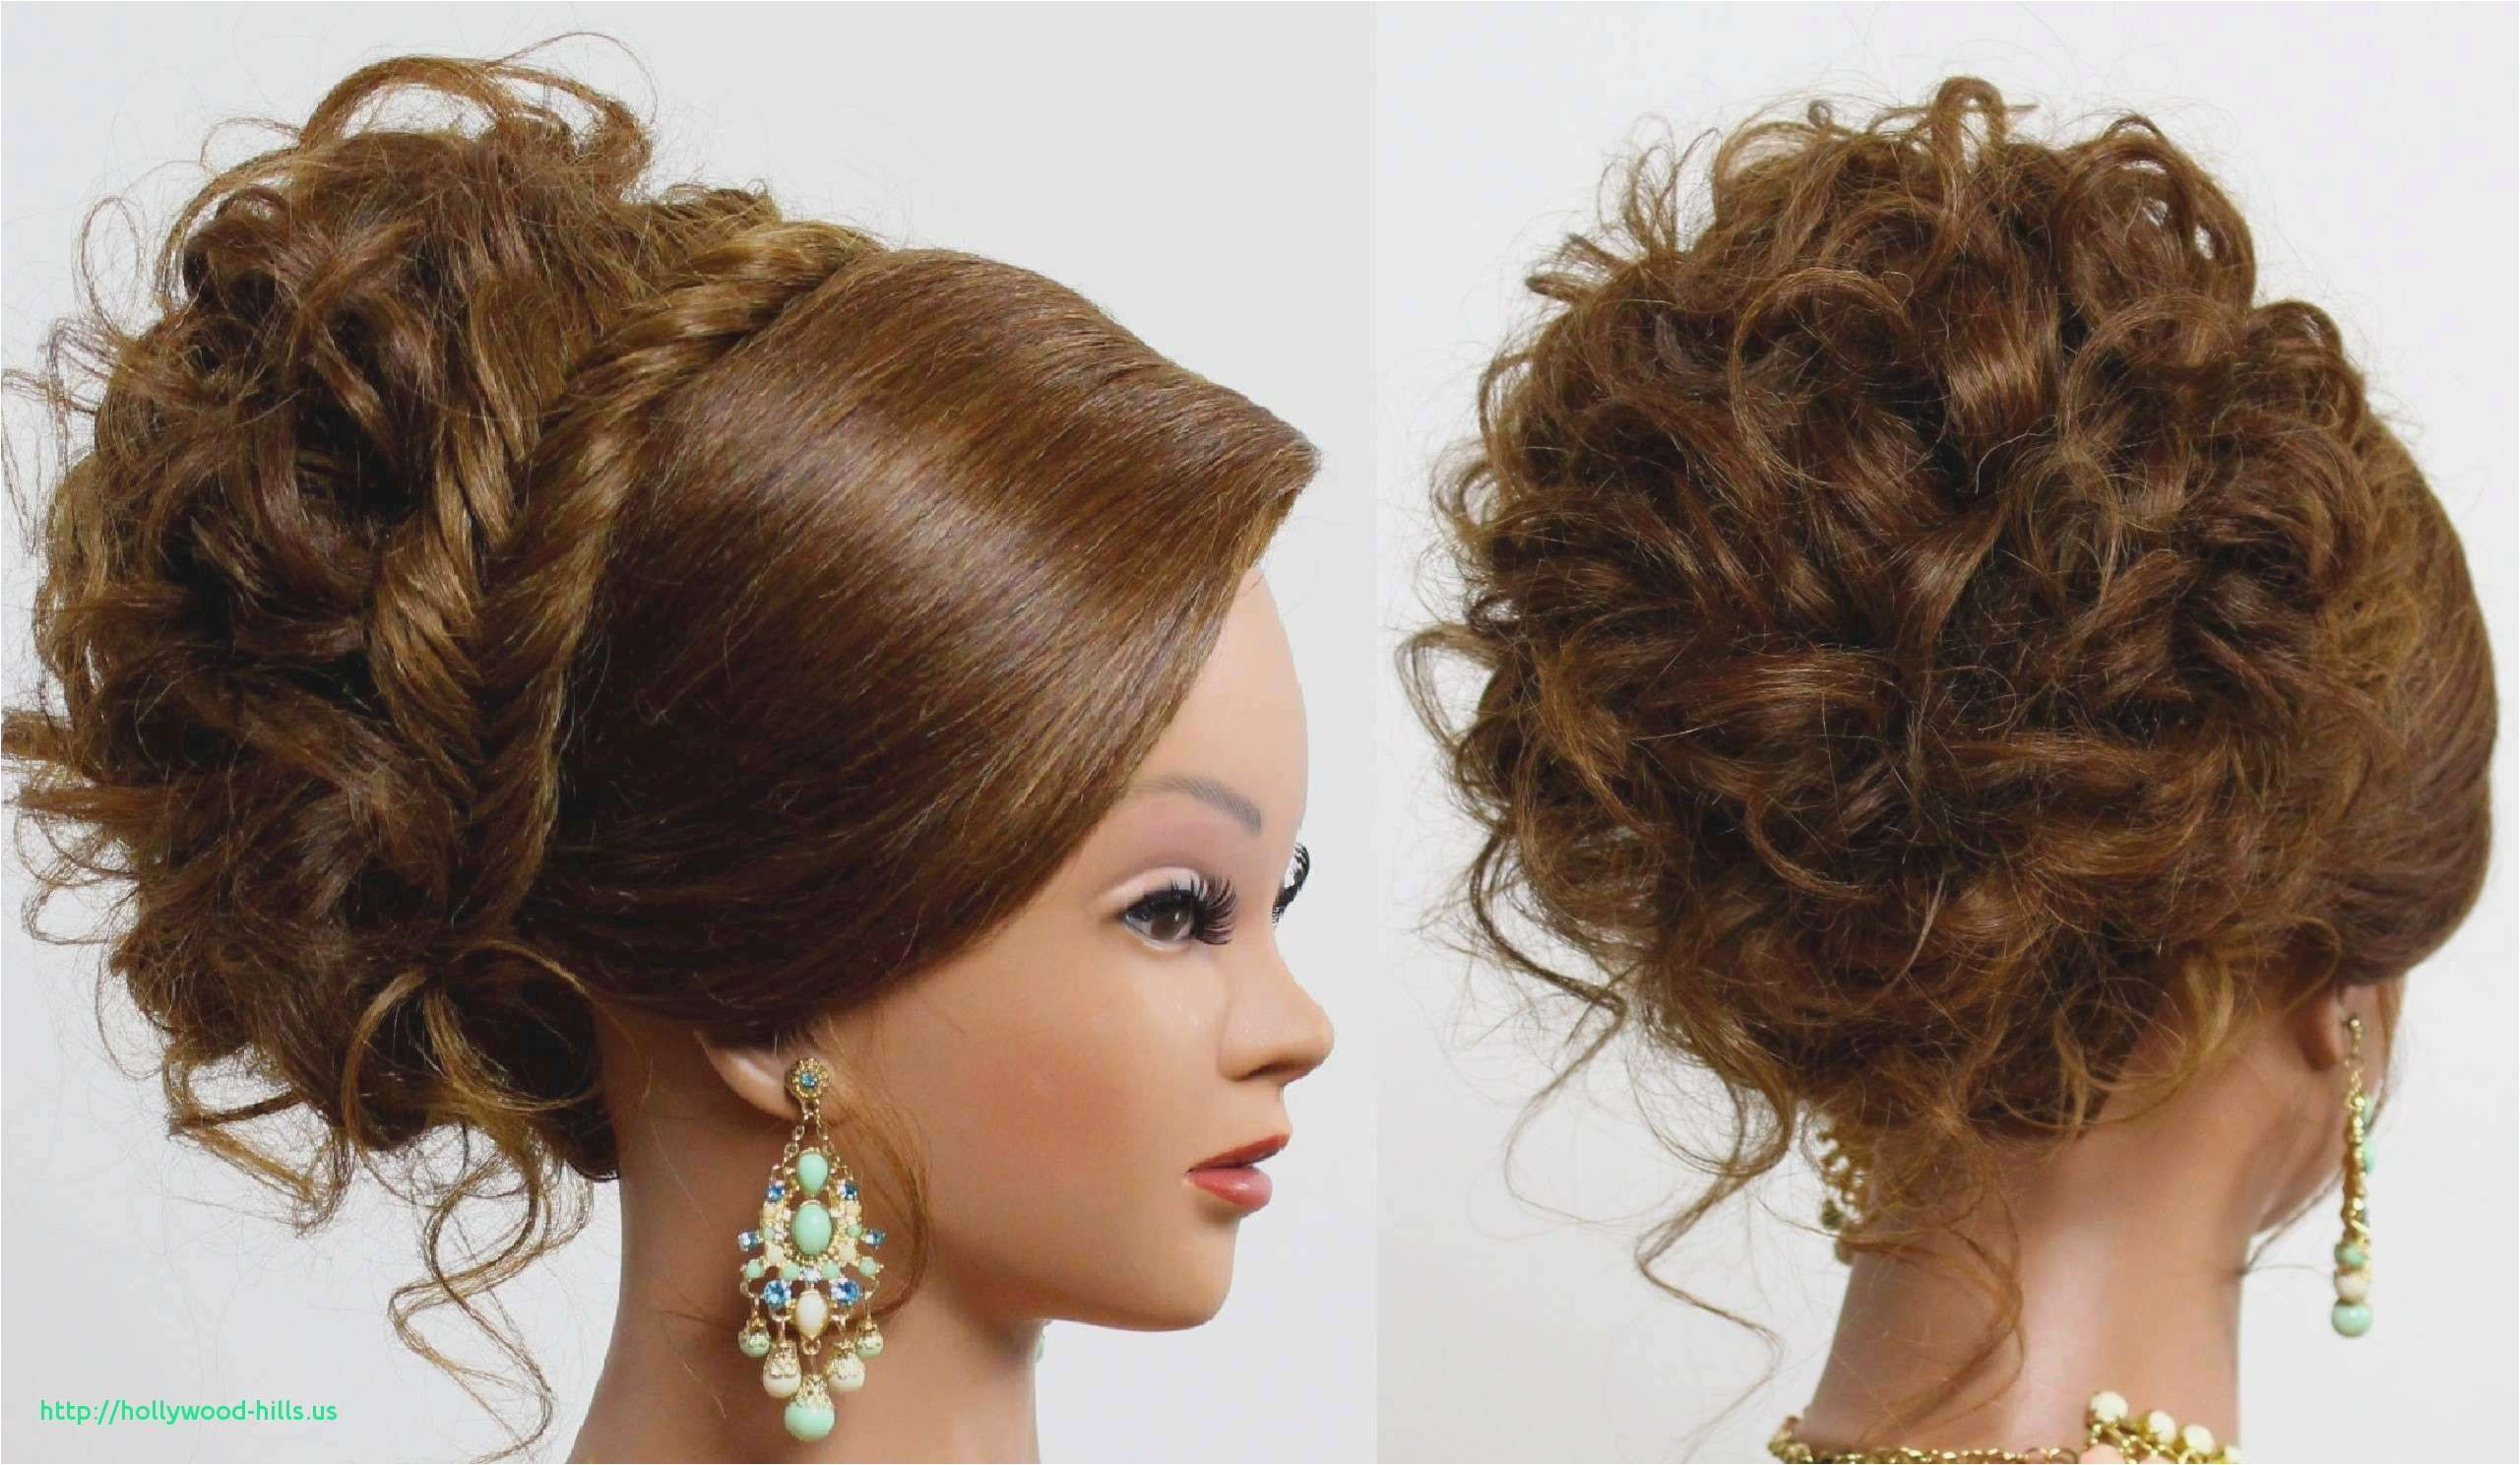 80s Prom Hairstyles Elegant Elegant evening Hairstyles for Long Hair Awesome Haircuts 0d 80s